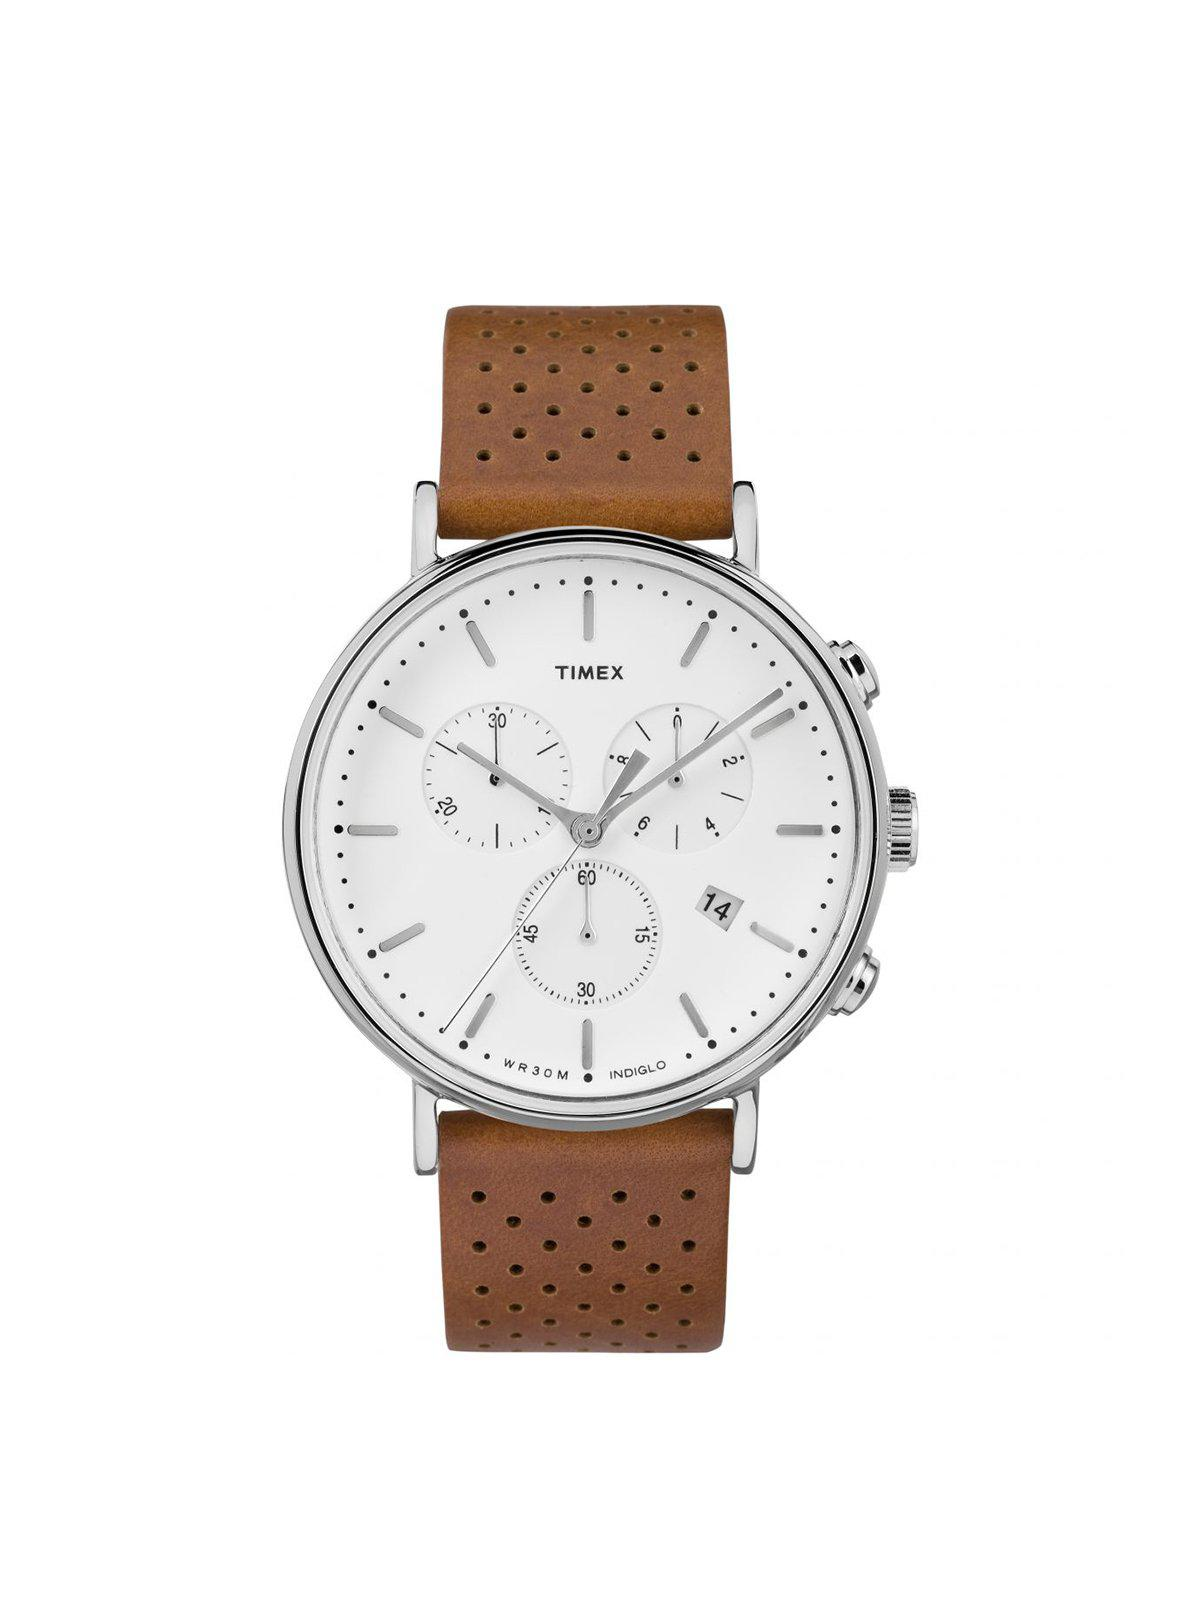 Timex Fairfield Weekender Chronograph TW2R26700 41mm - MORE by Morello Indonesia